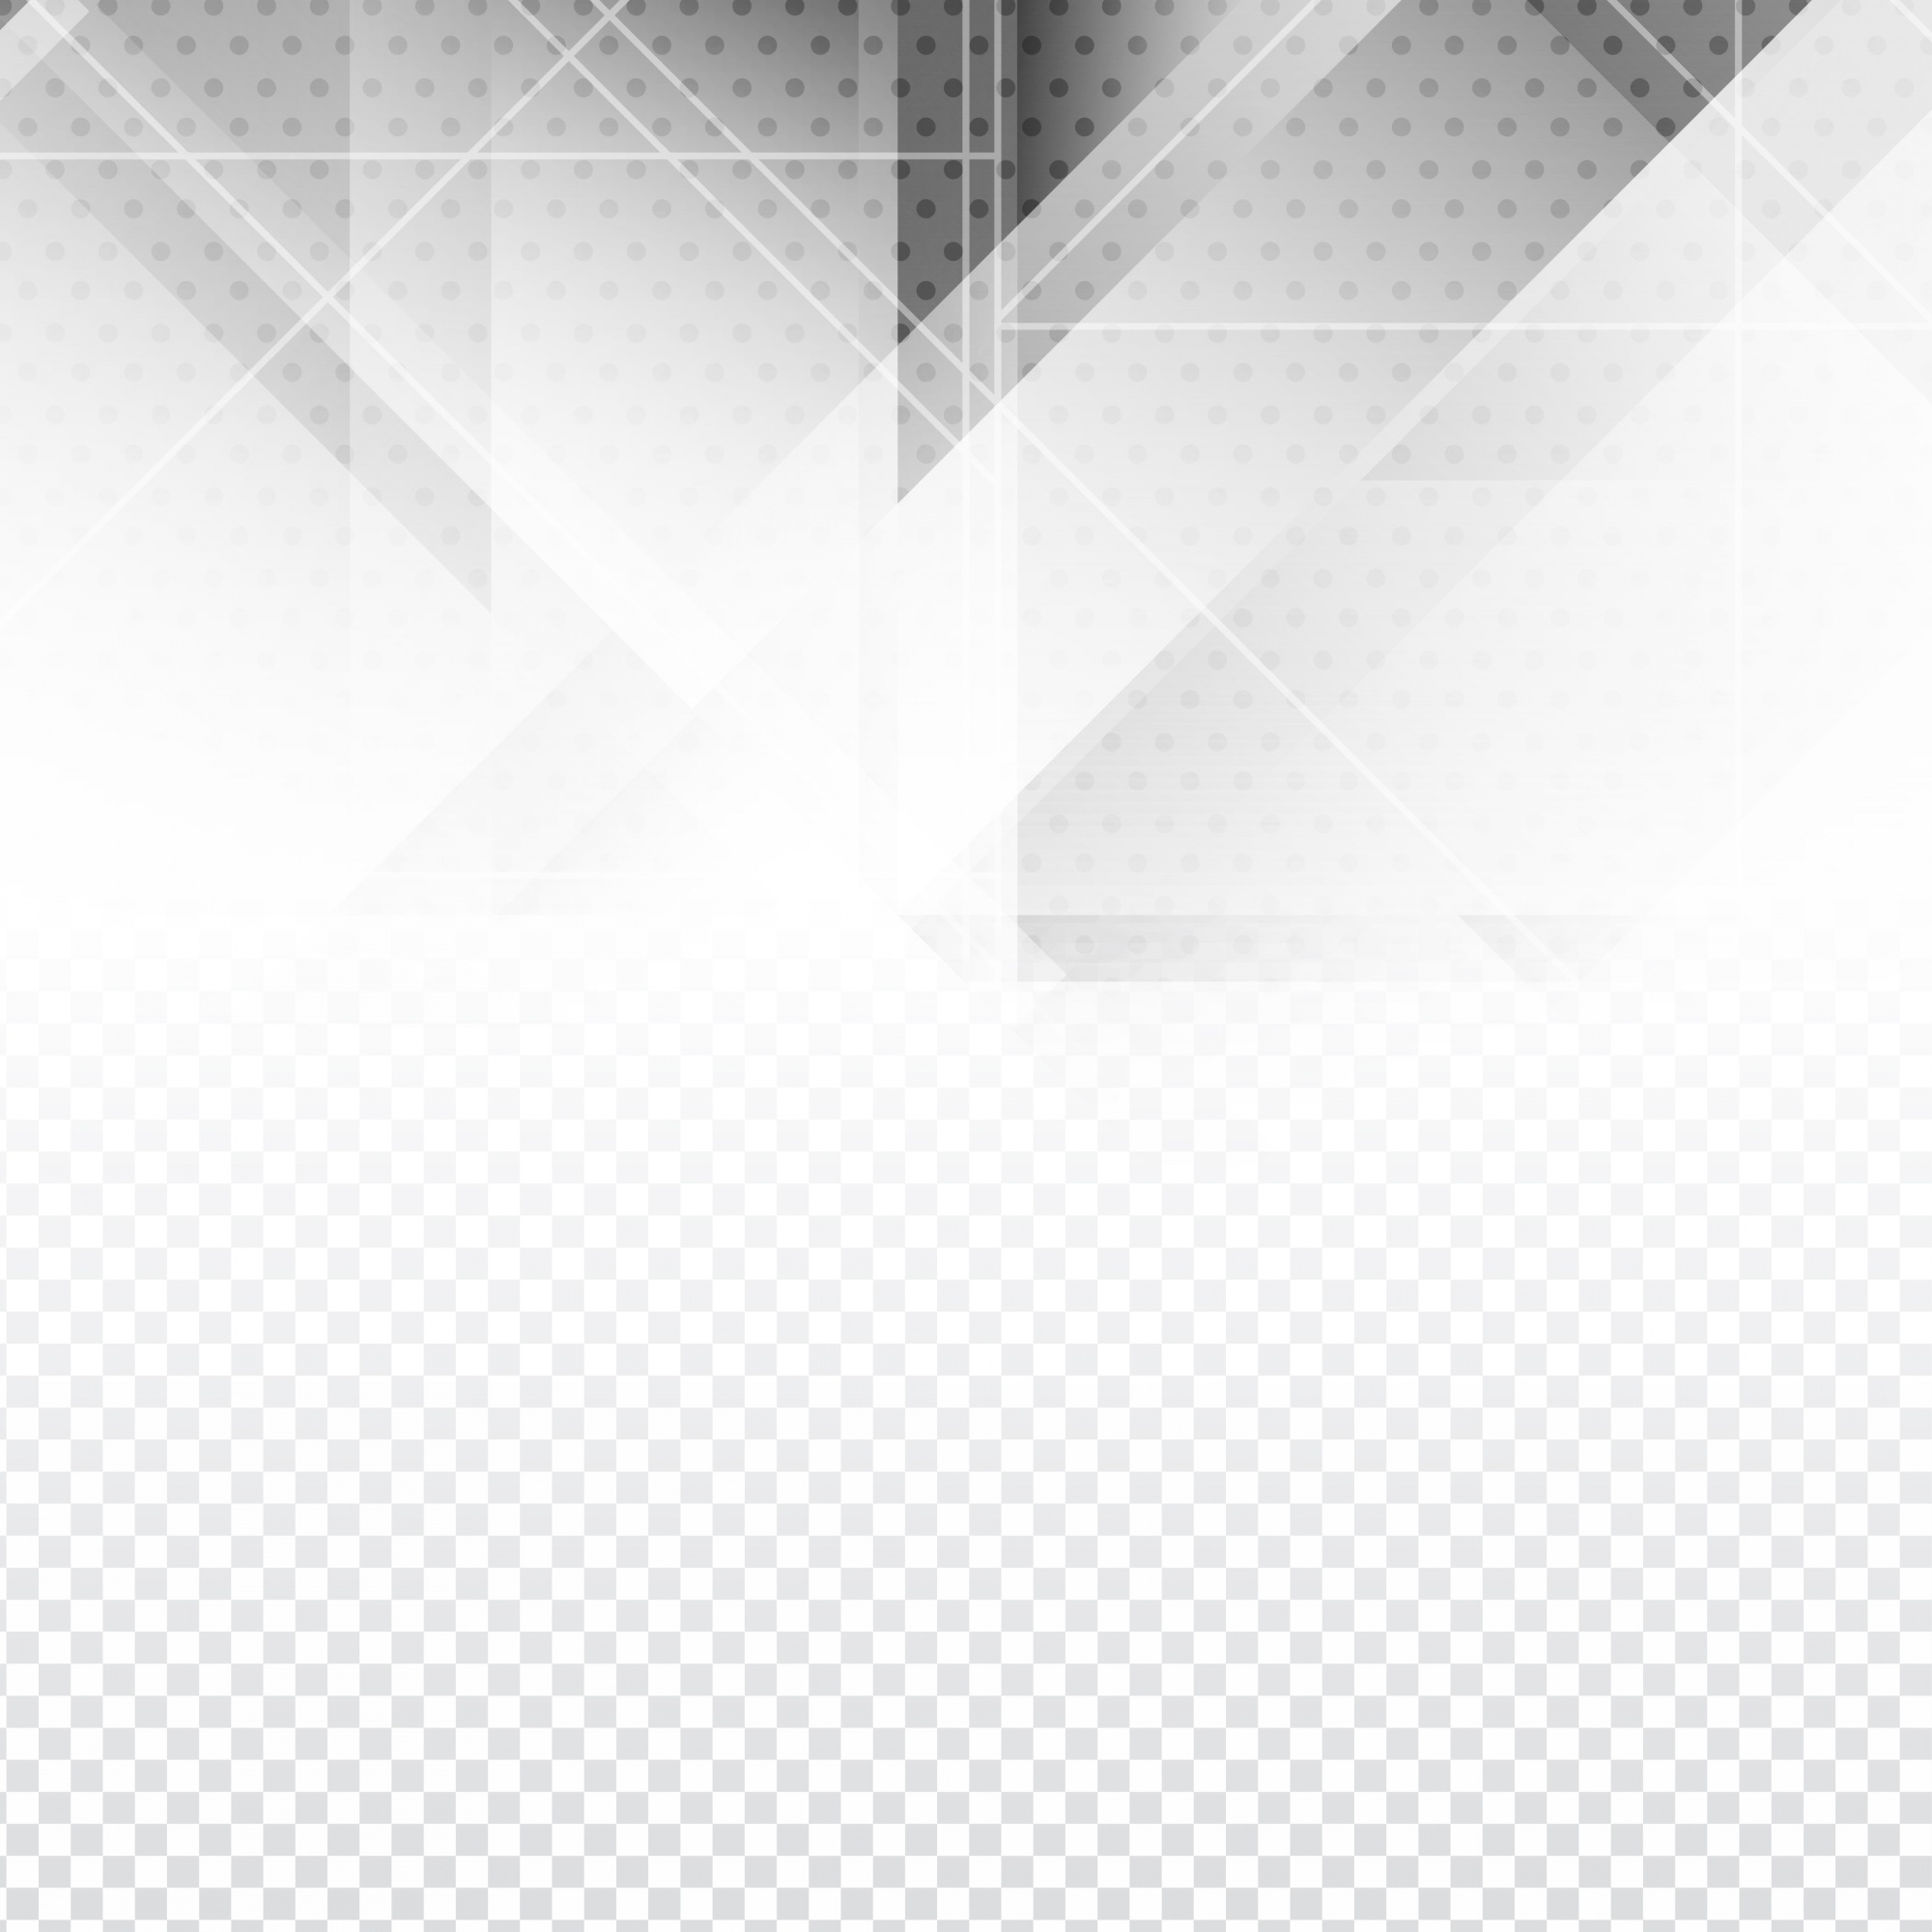 Gray geometric shapes for backgrounds